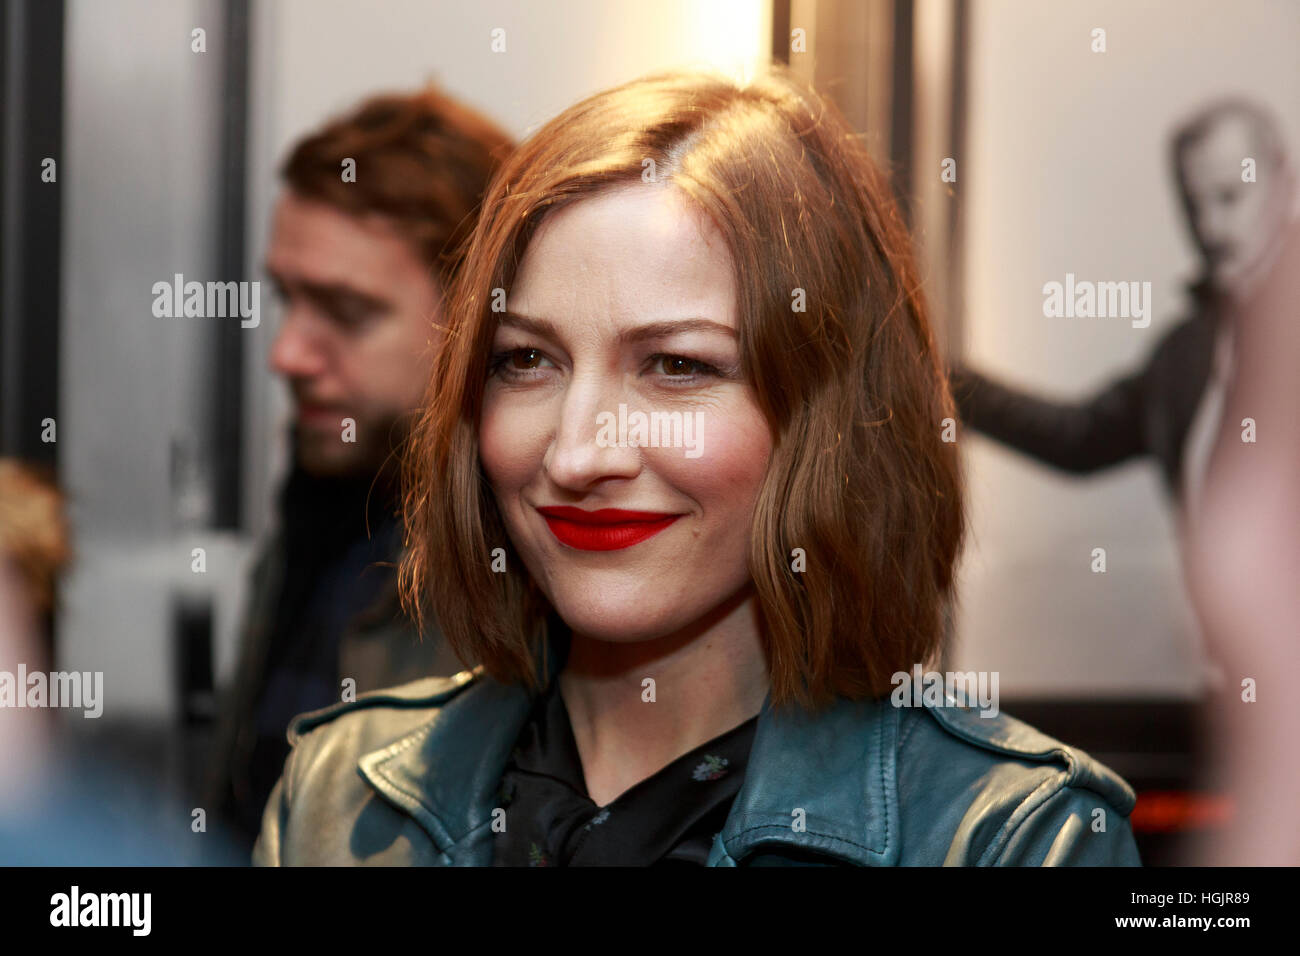 Edinburgh, UK. 22nd January, 2017. T2 Trainspotting premiere at Edinburgh Cineworld. Scotland. Pictured Kelly Macdonald. Stock Foto